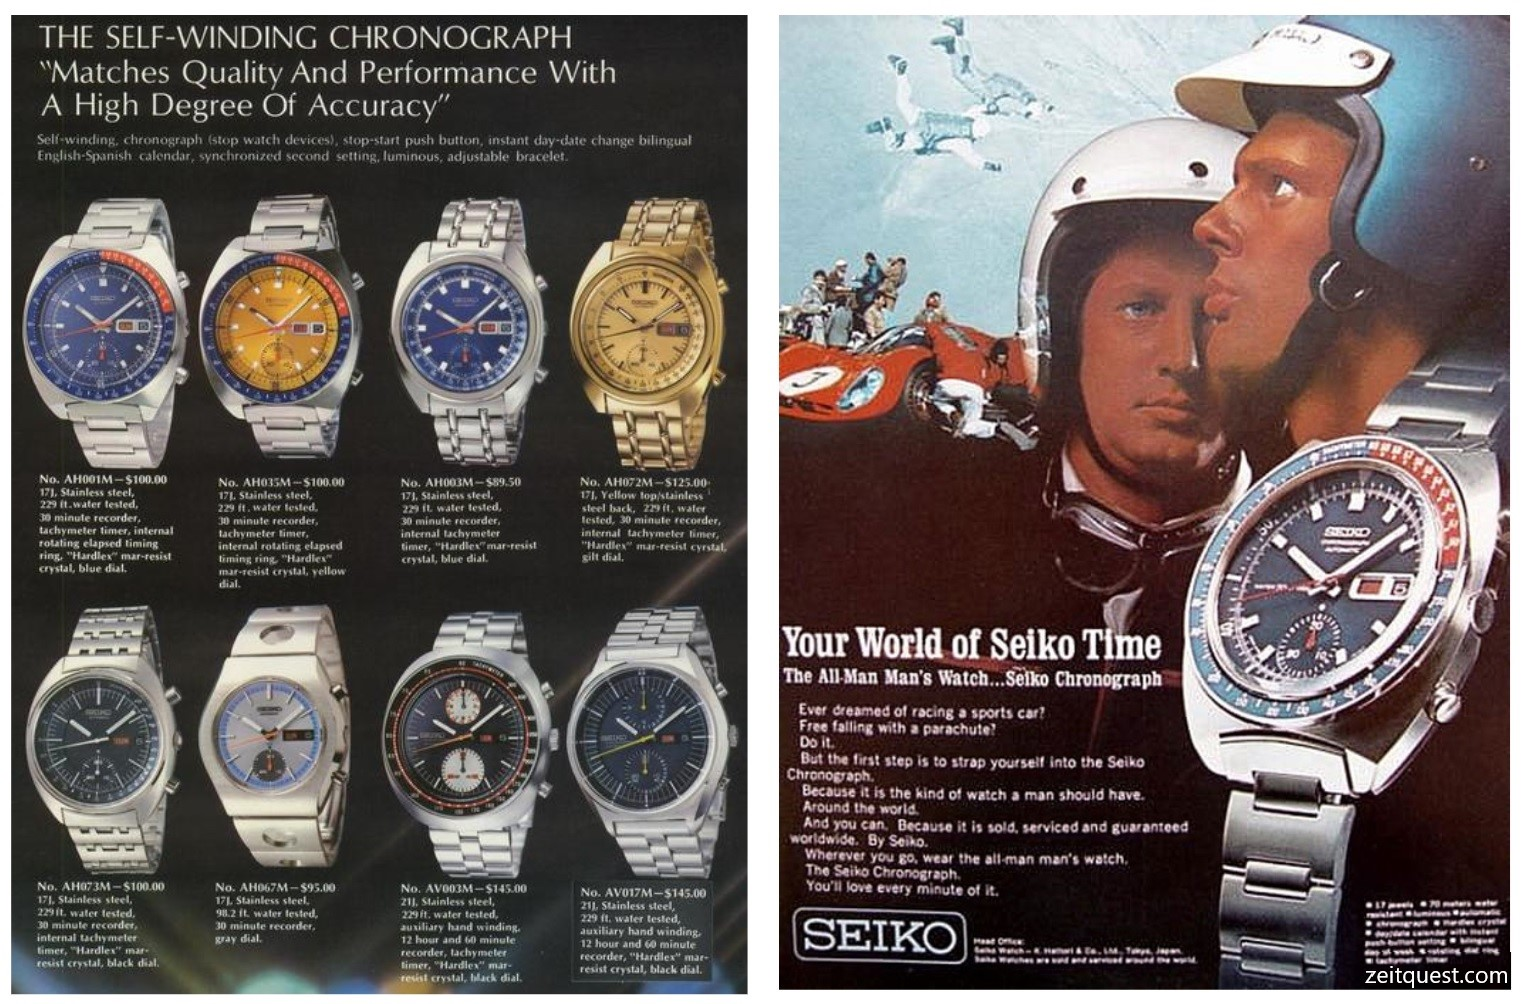 Left: Seiko 1969 Catalog, showing different Seiko 6139-600X models. Right: Seiko Chronograph advertisement by Seiko for the 6139 model (1969). Credits: Seiko 1969 Catalog, Seiko.